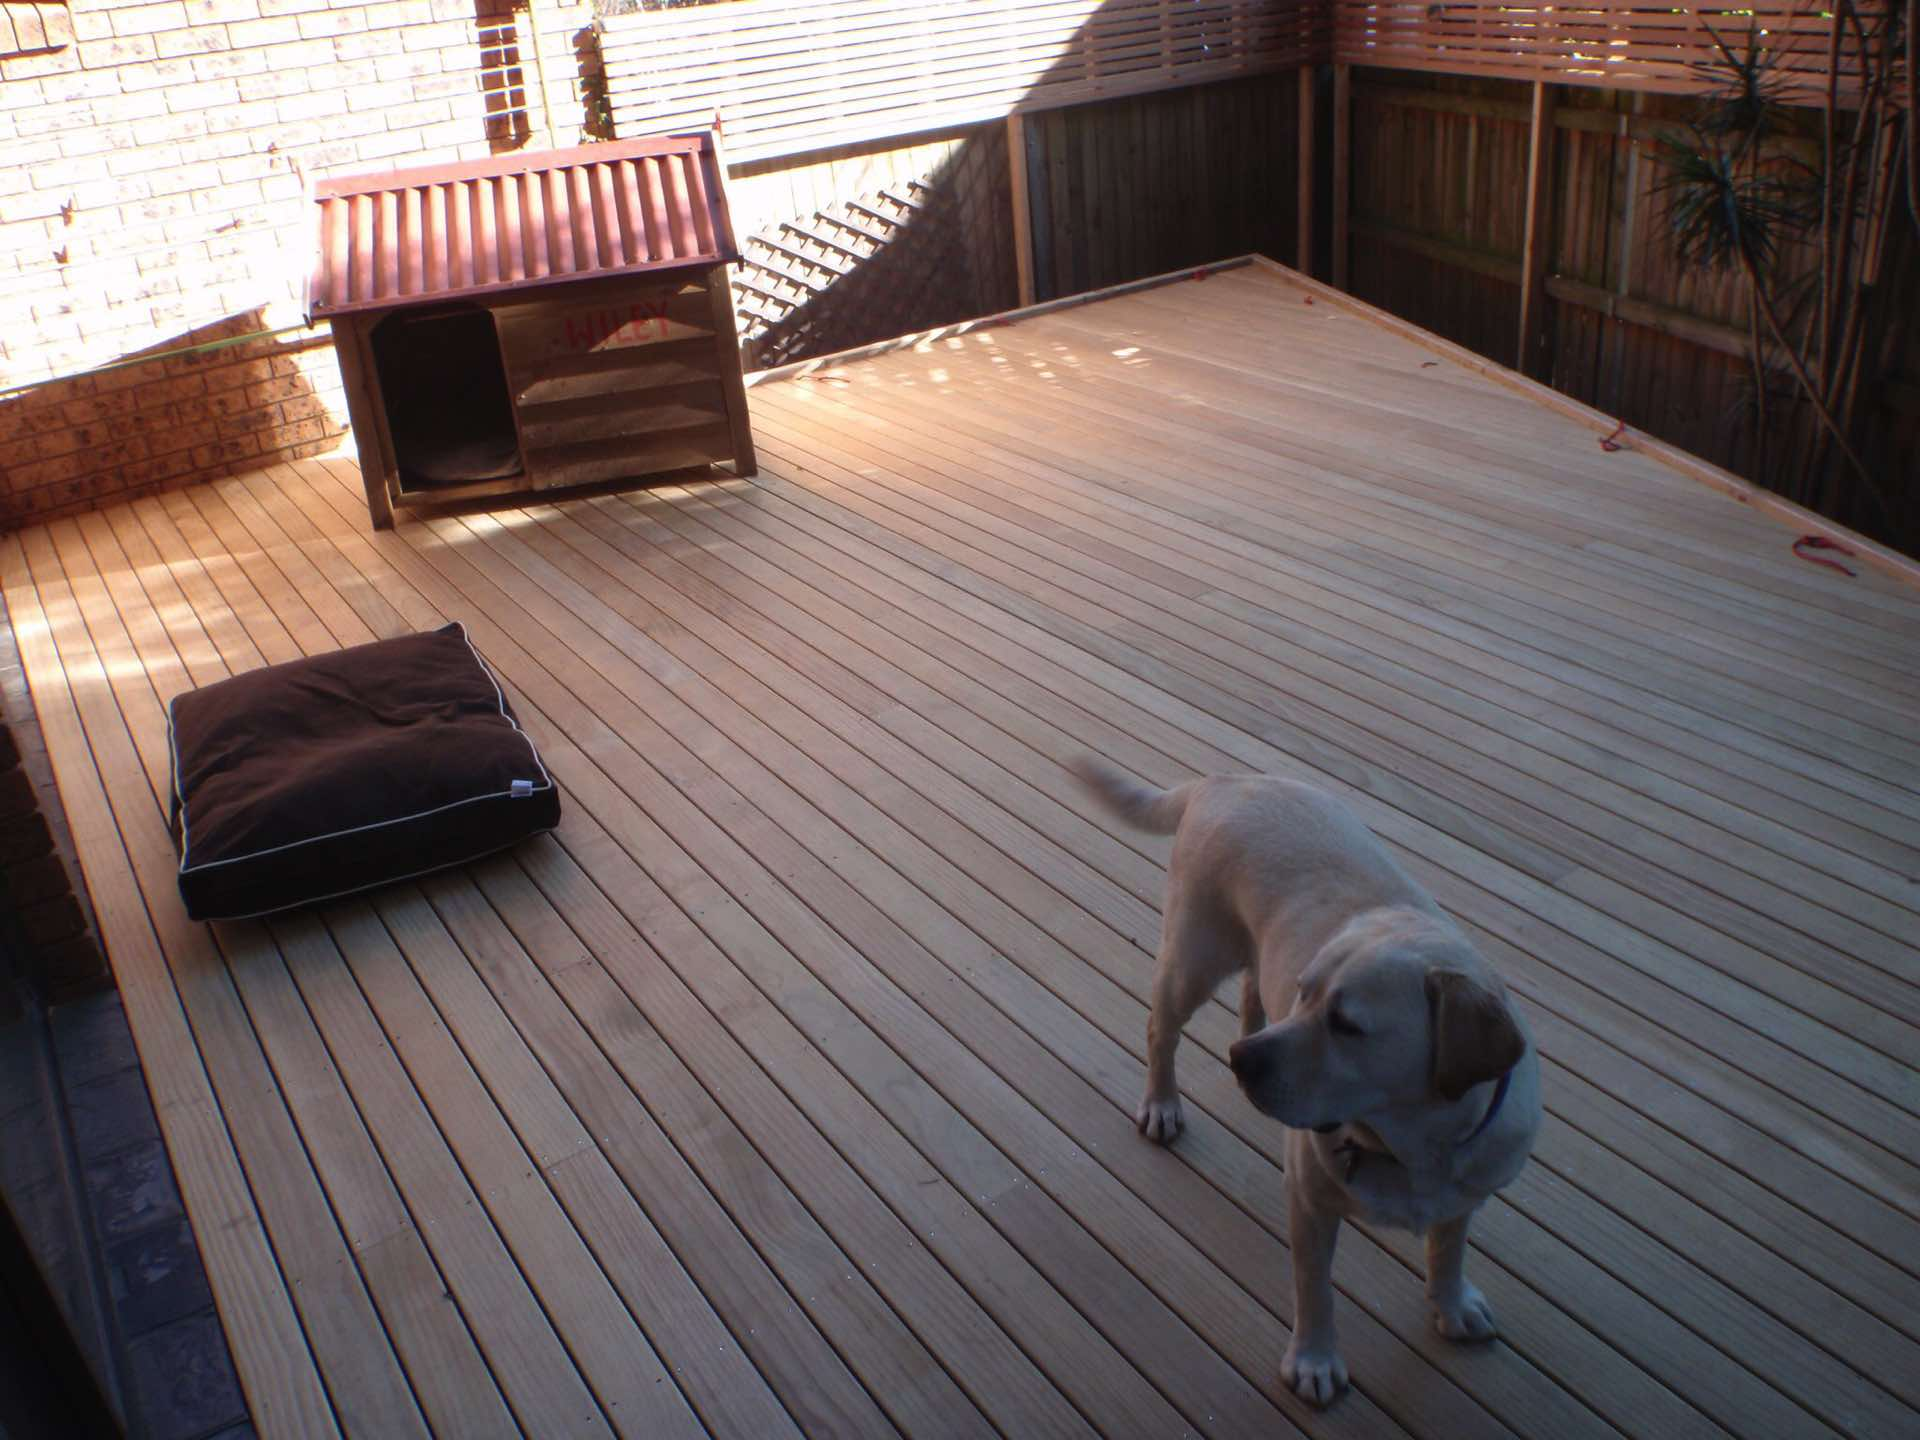 New treated pine deck ready for lights in an area that previously couldnt be used.  Being watched by Wyley the dog Northbridge, NSW